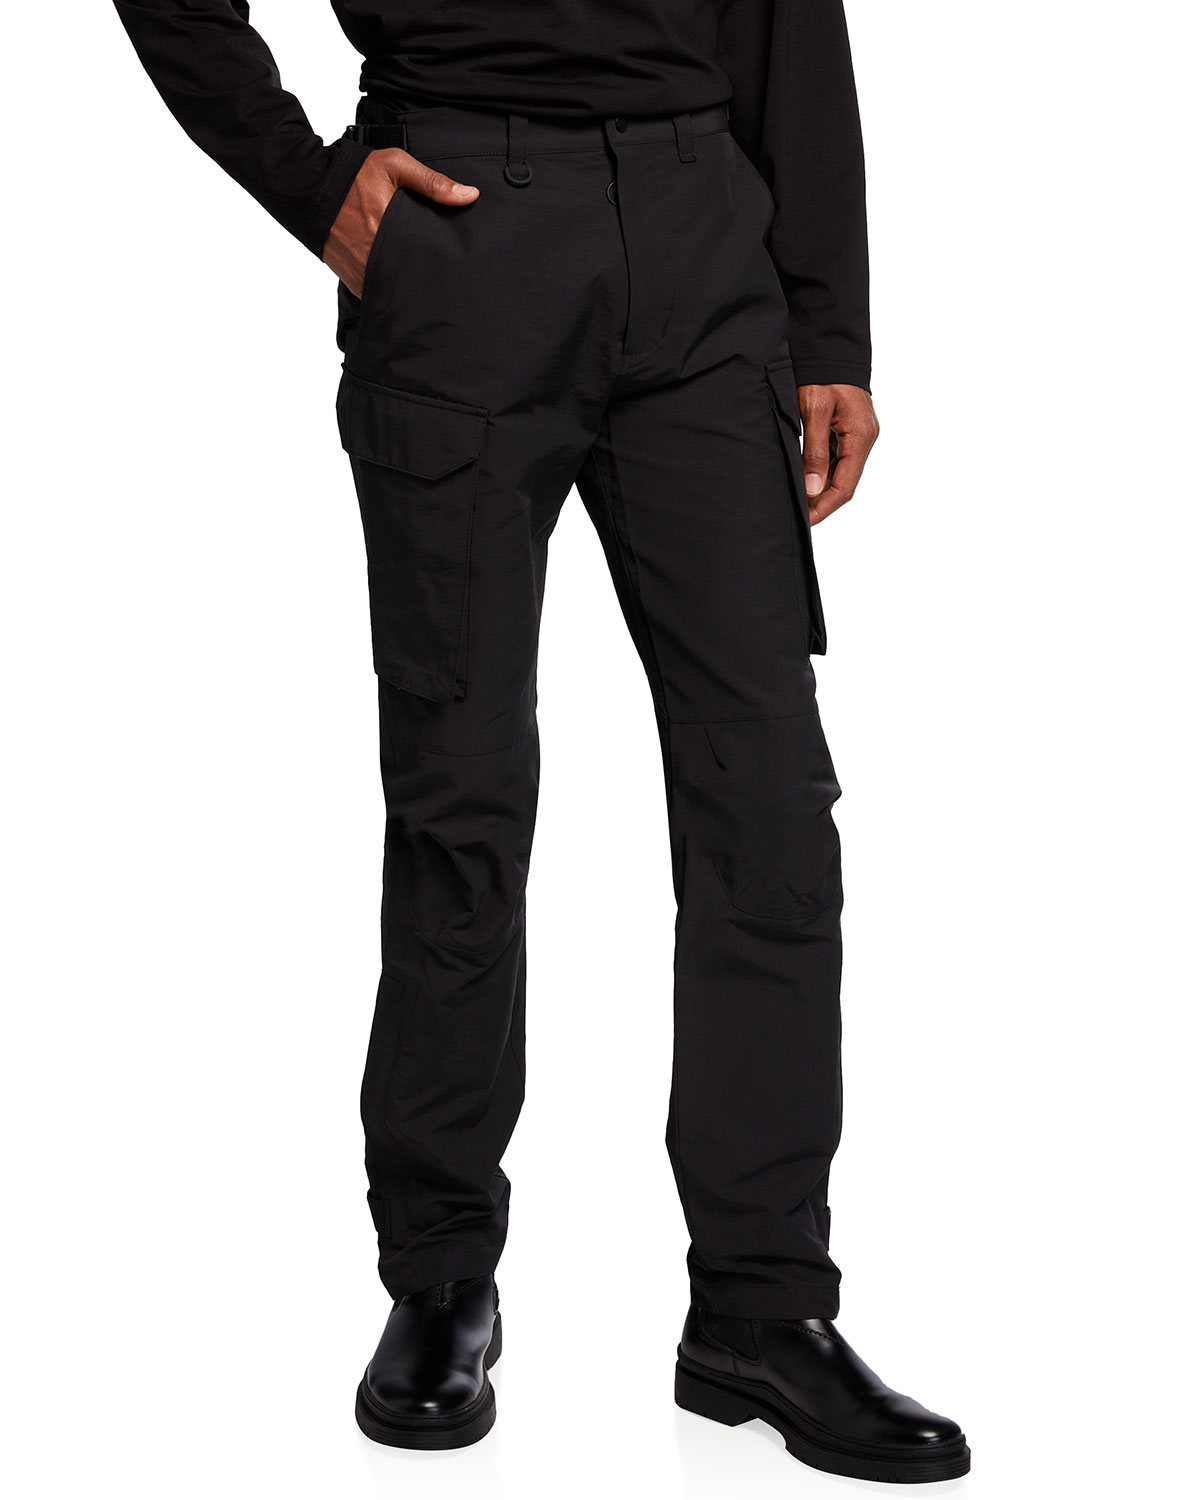 Stampd MEN'S DRILL CARGO PANTS